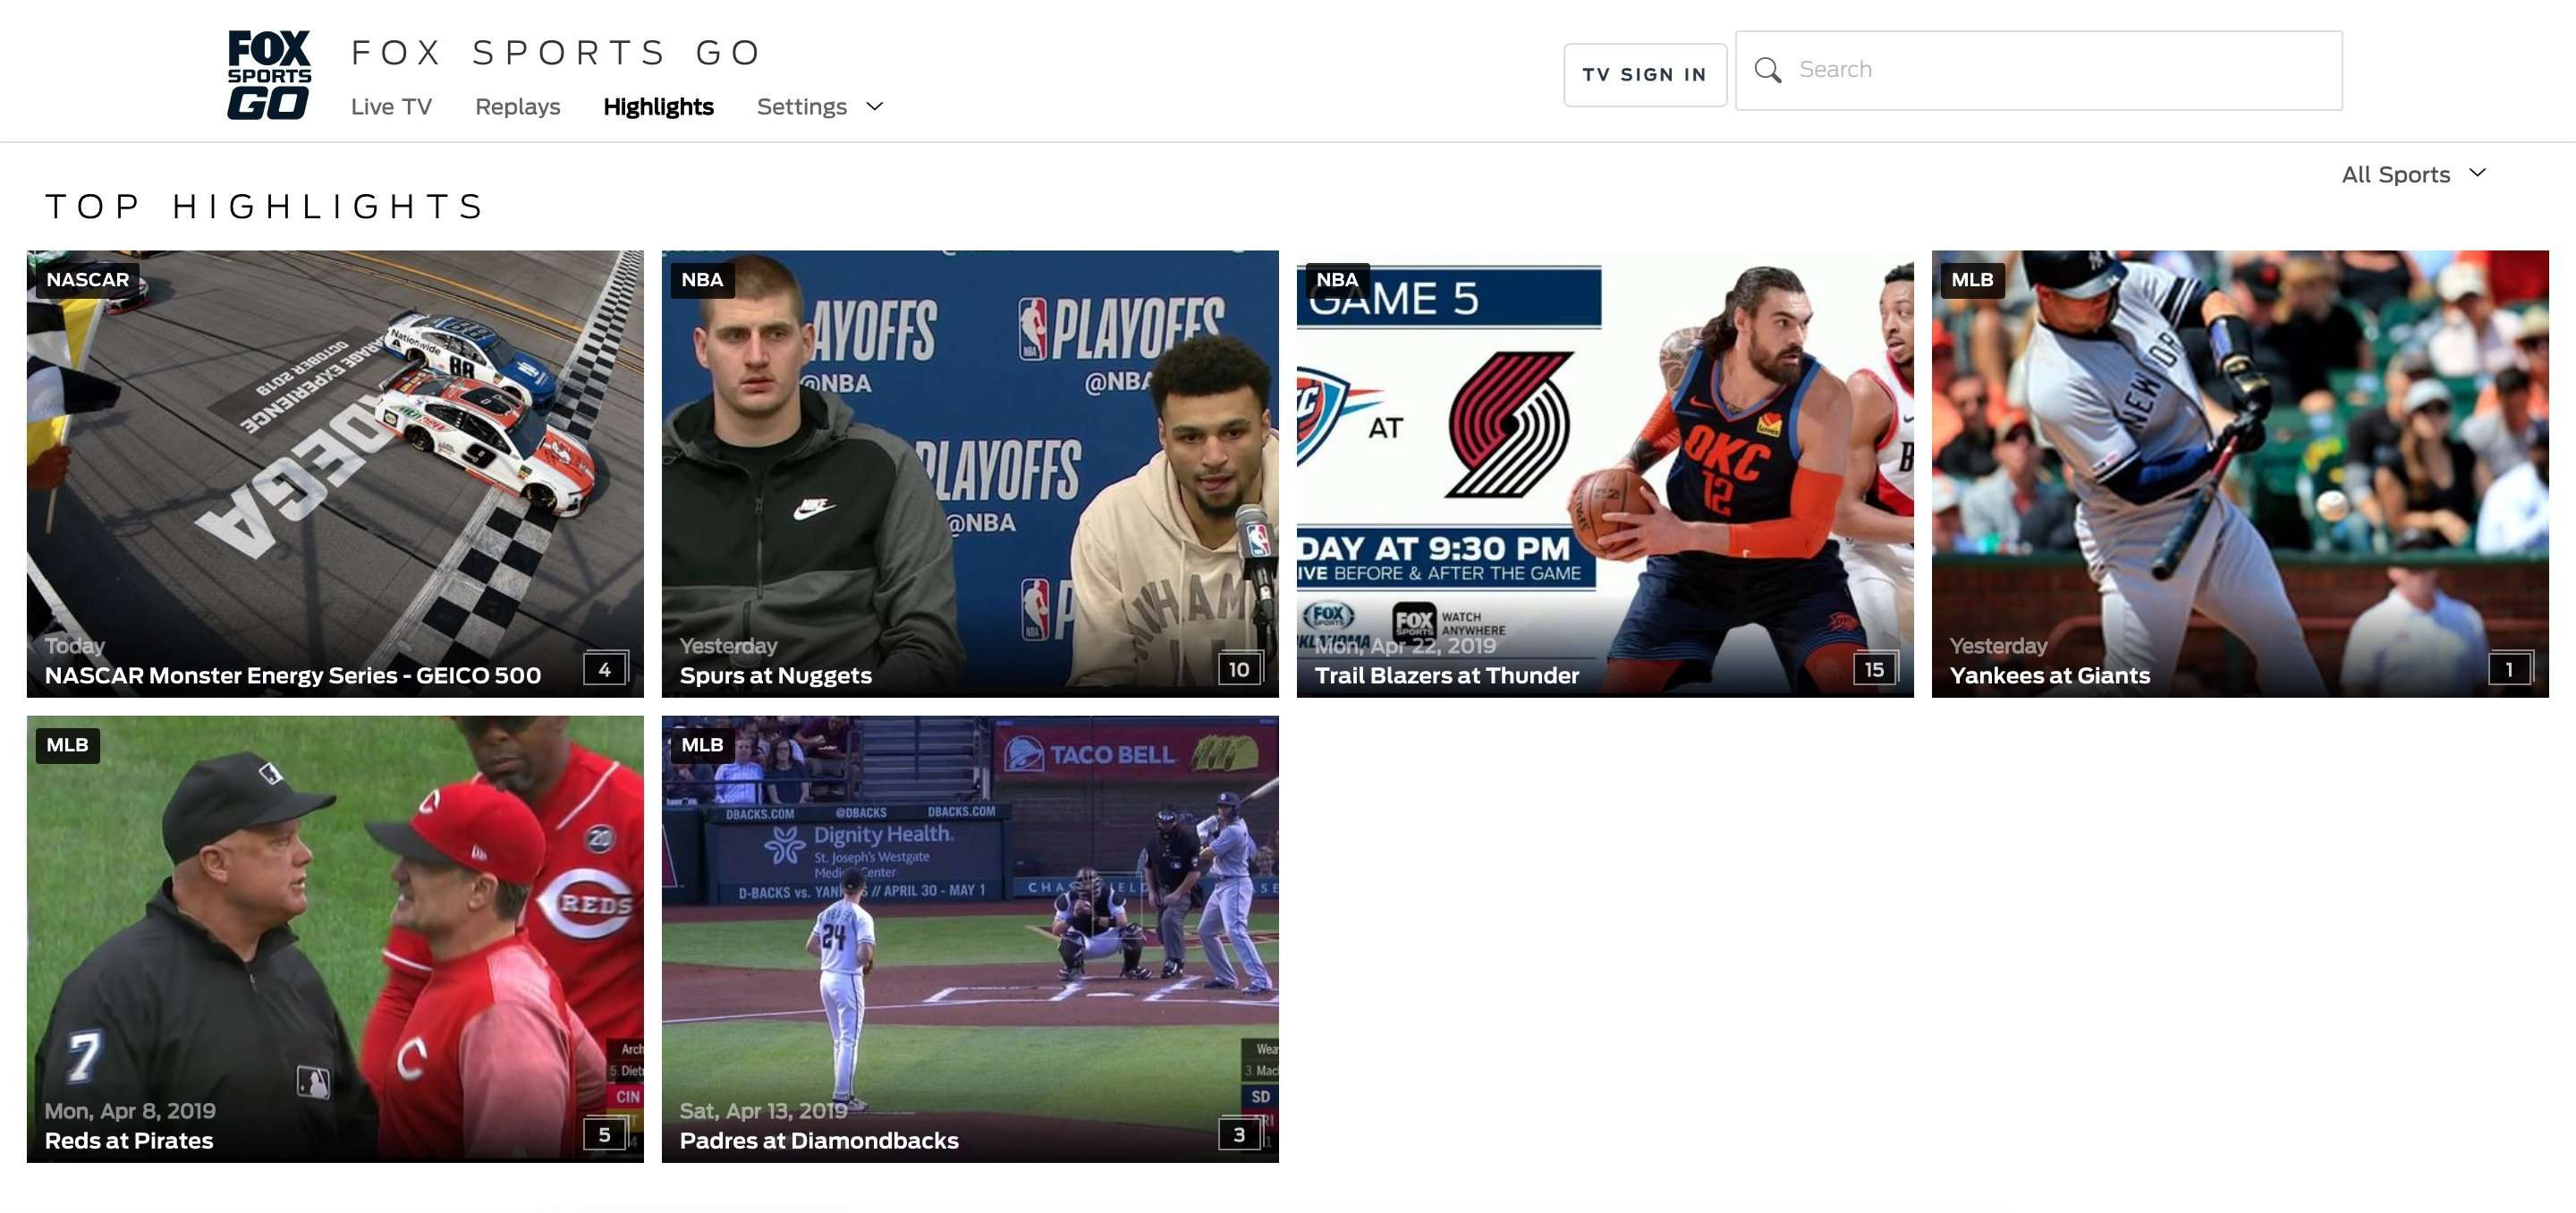 How to Watch Fox Sports Go Outside the U.S?